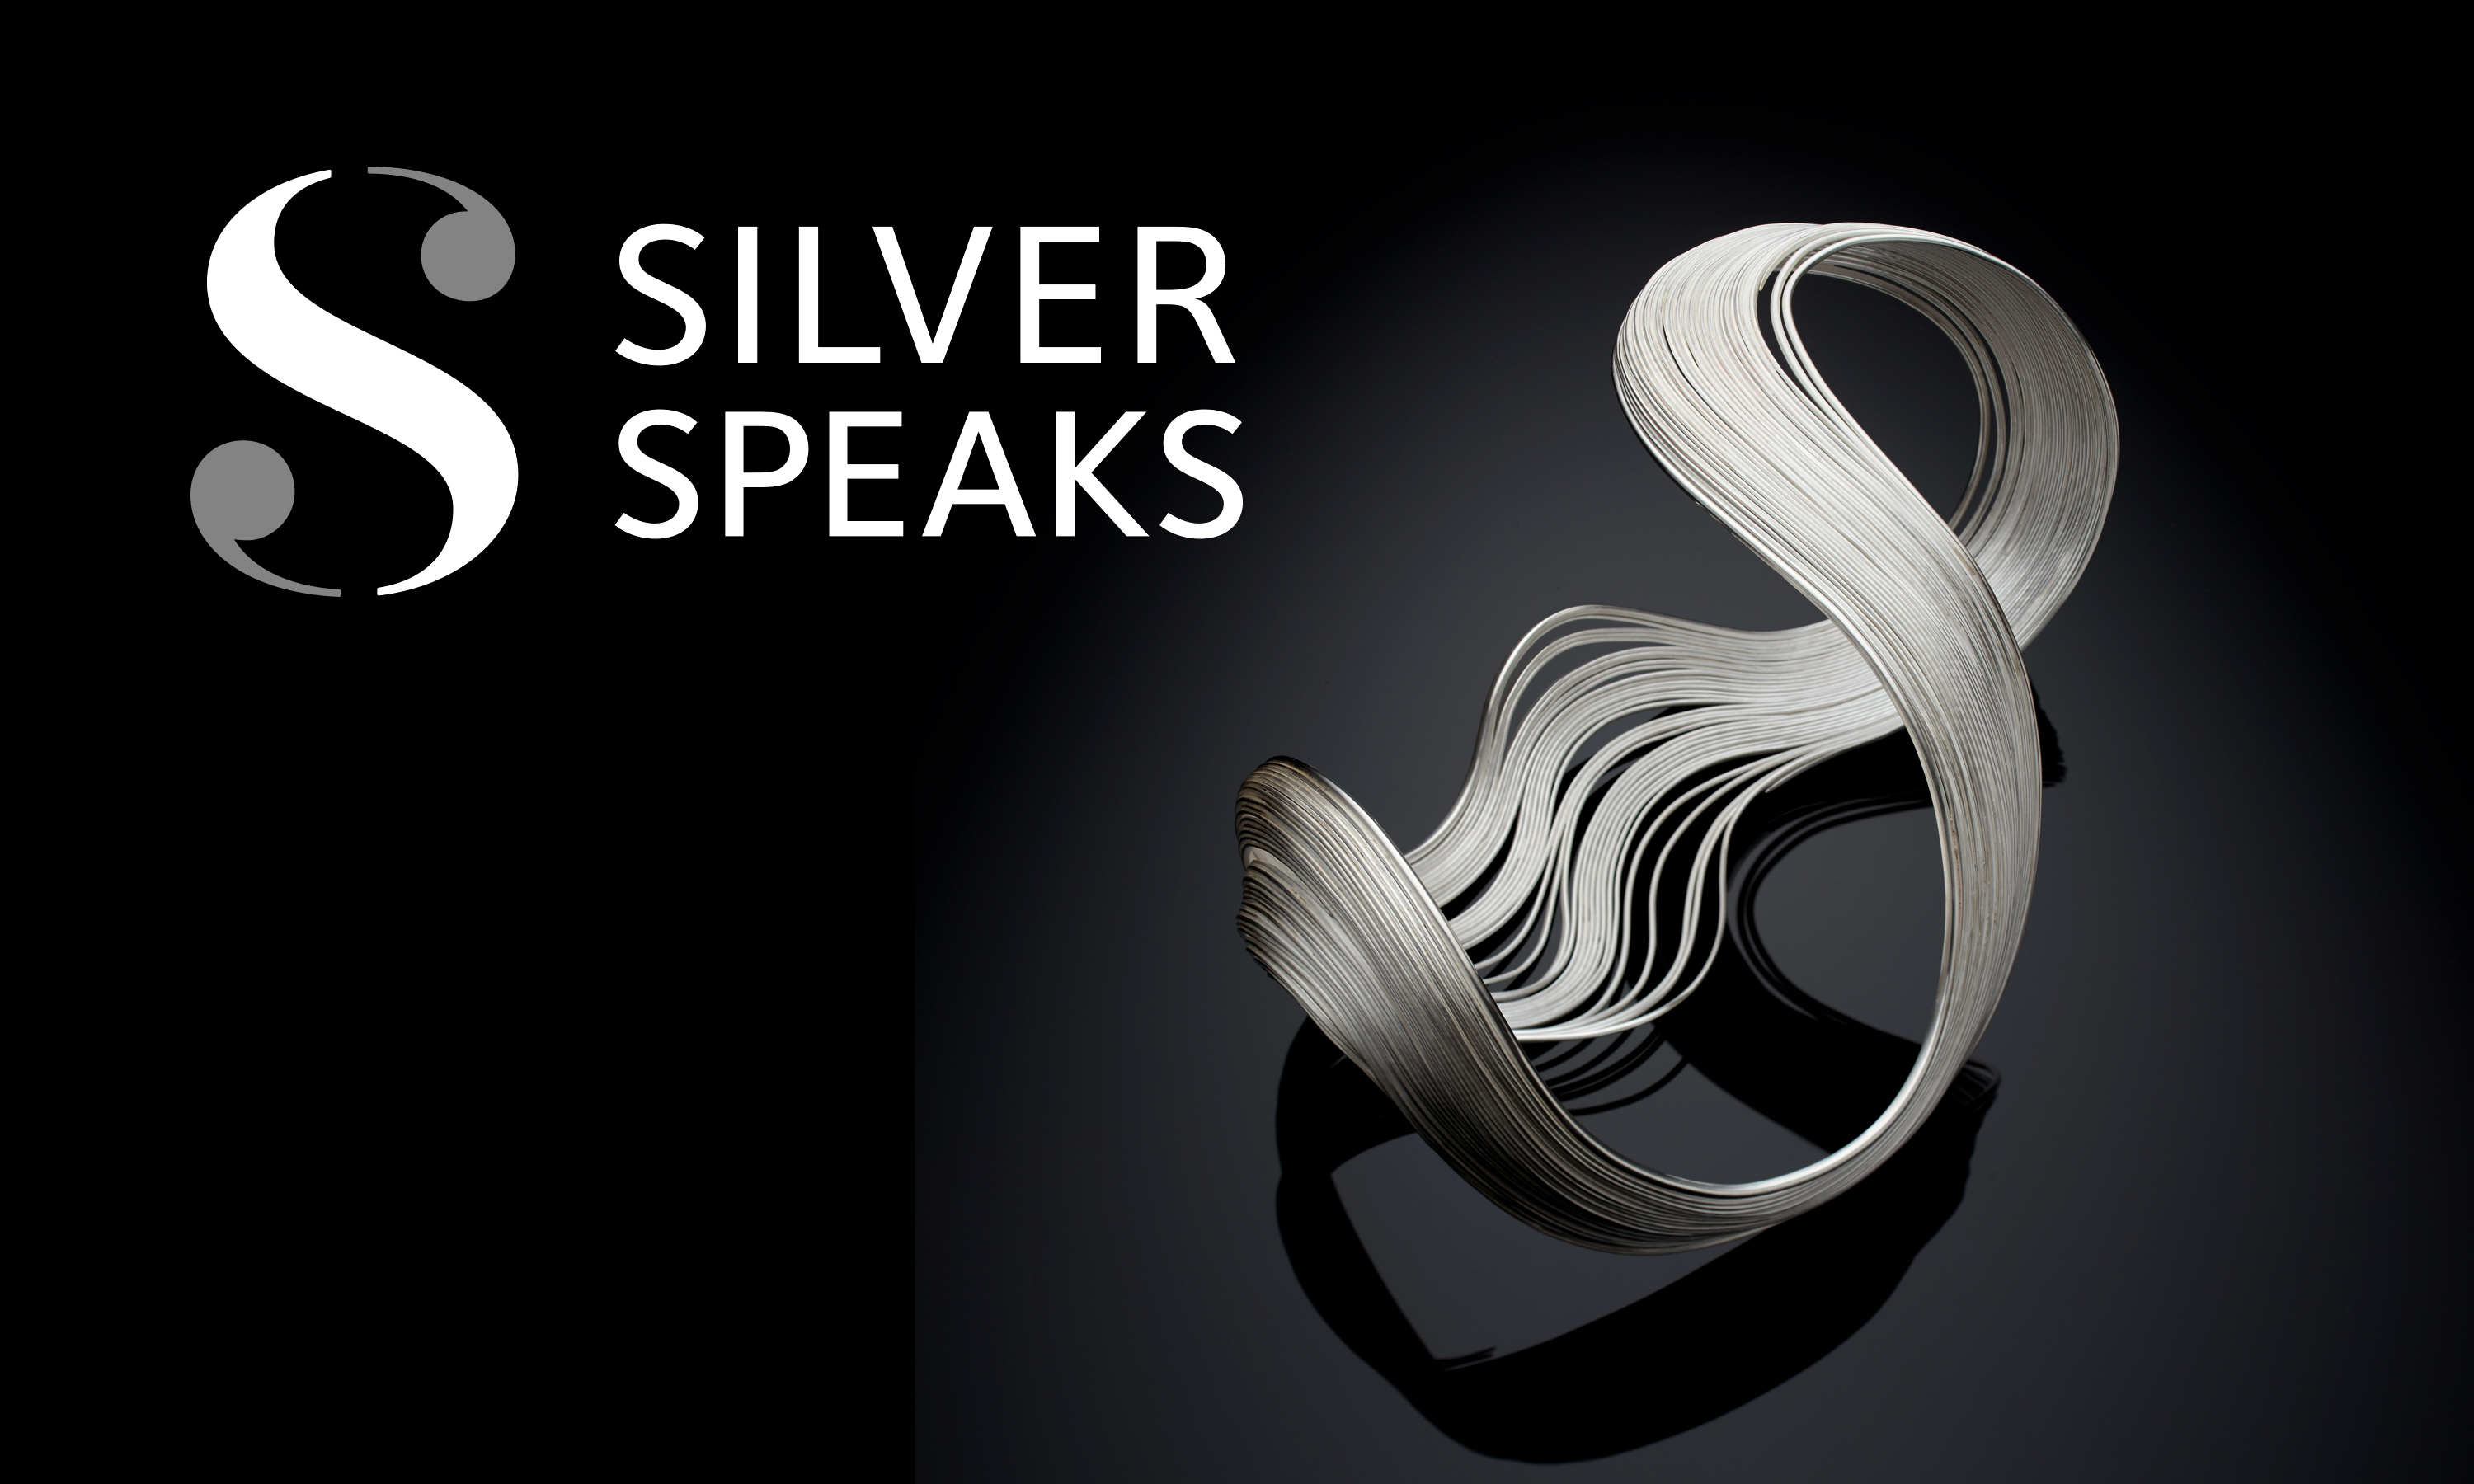 Branding and website design by Neon - designed by Dana Robertson - Silver Speaks exhibition logo with piece of silver work